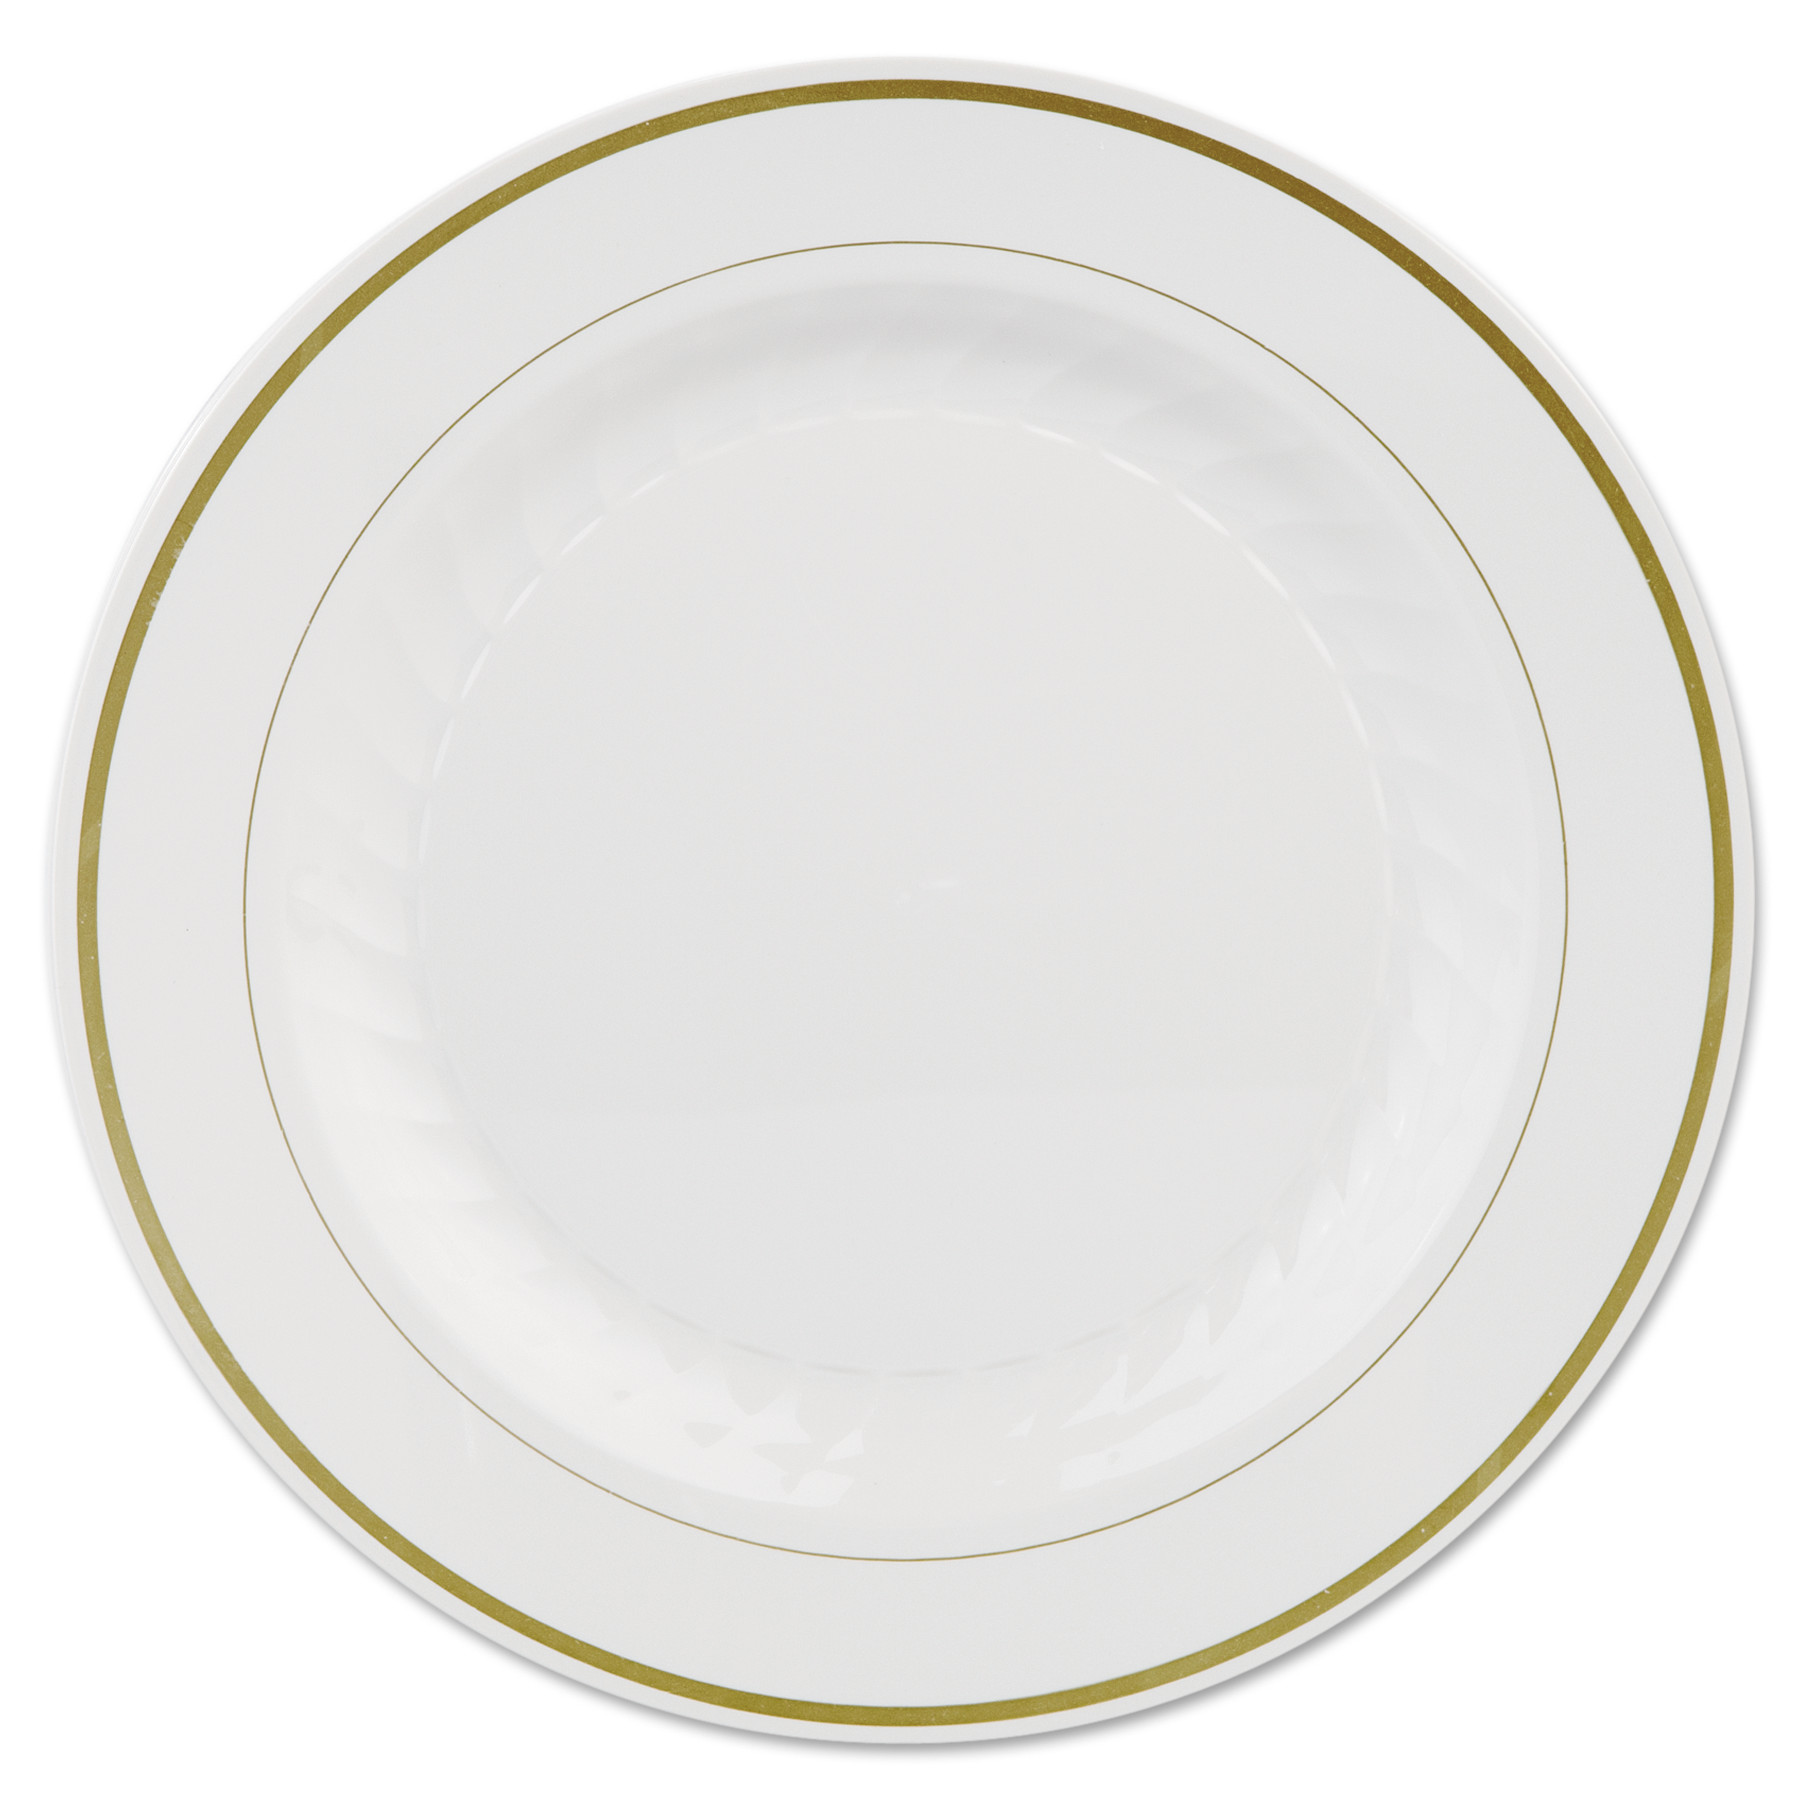 WNA Masterpiece Plastic Plates, 10 1/4in, Ivory w/Gold Accents, Round